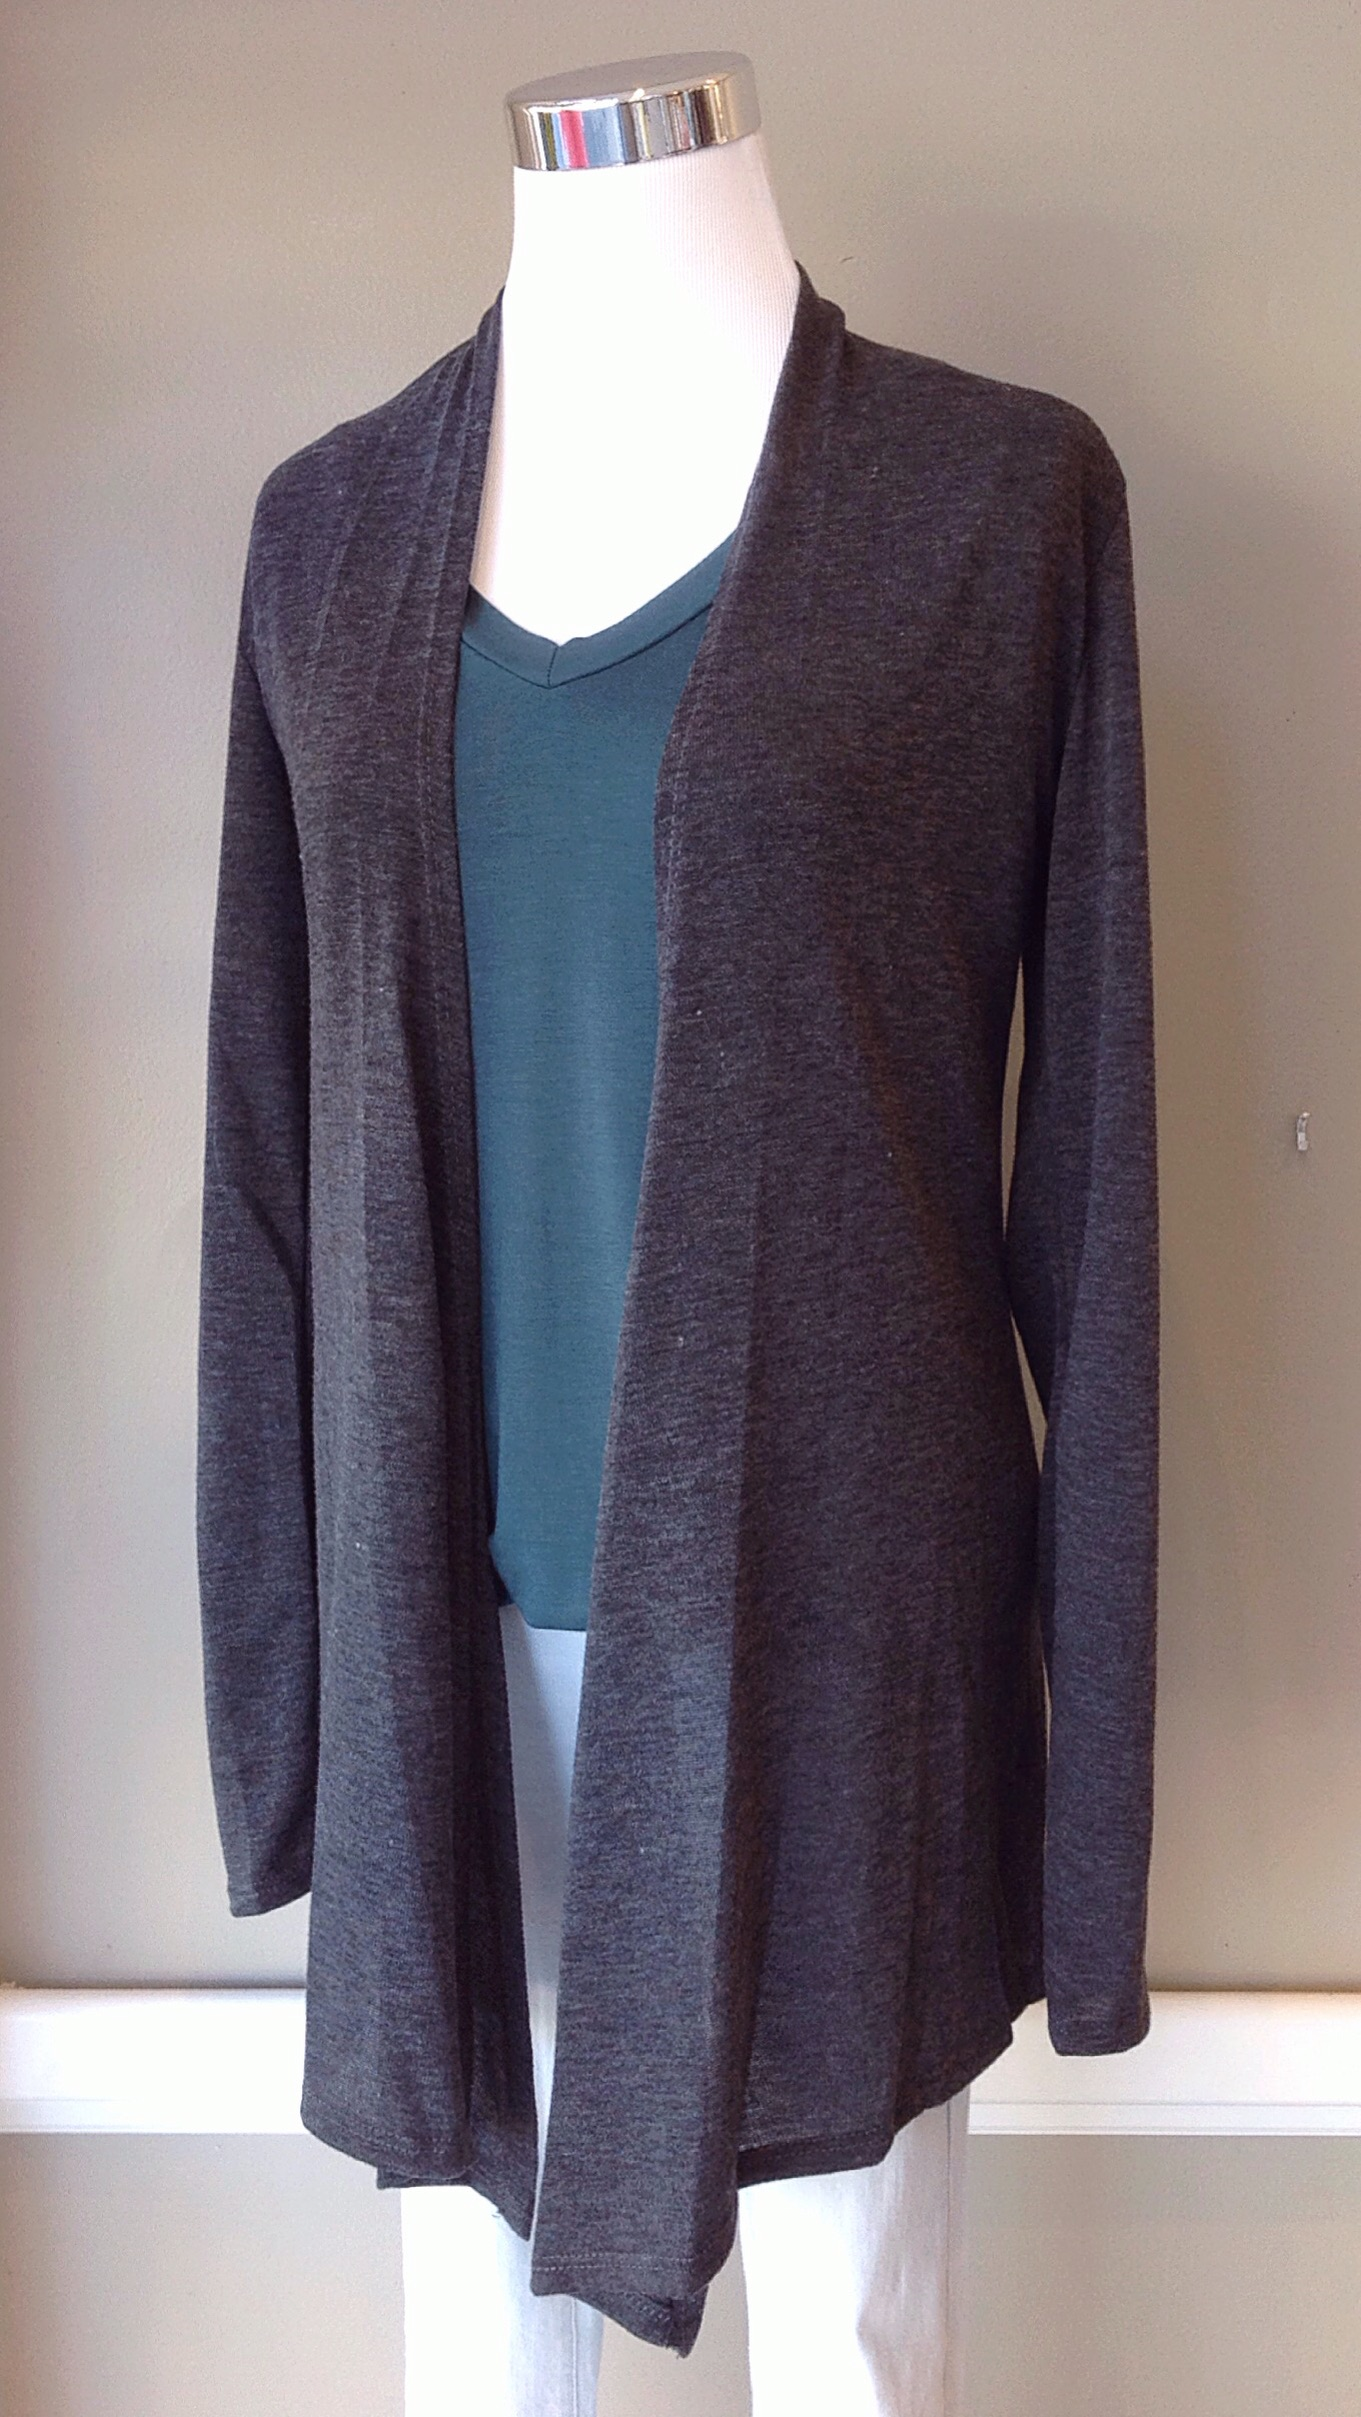 Lightweight open front cardigan in charcoal, $28. Also available in black.